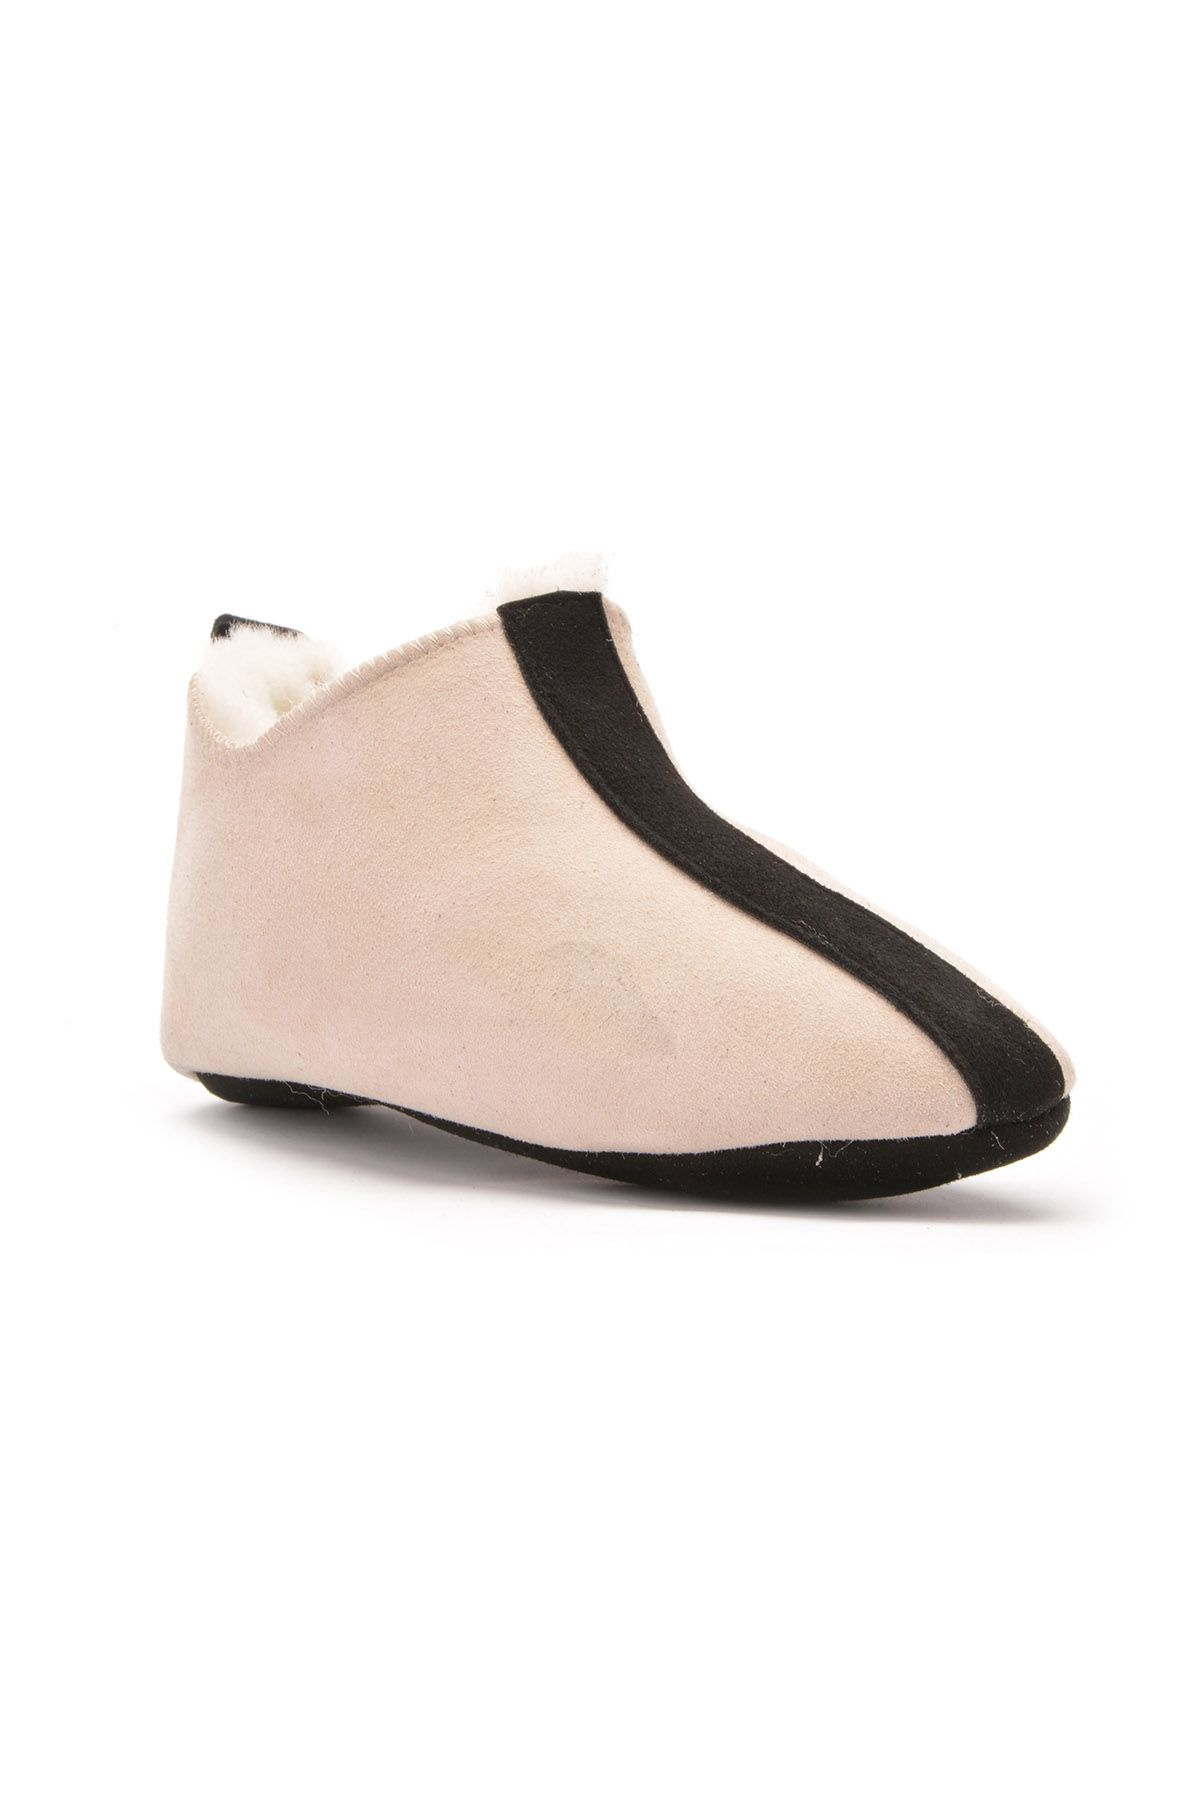 Pegia Kids House-Shoes From Genuine Fur Cream